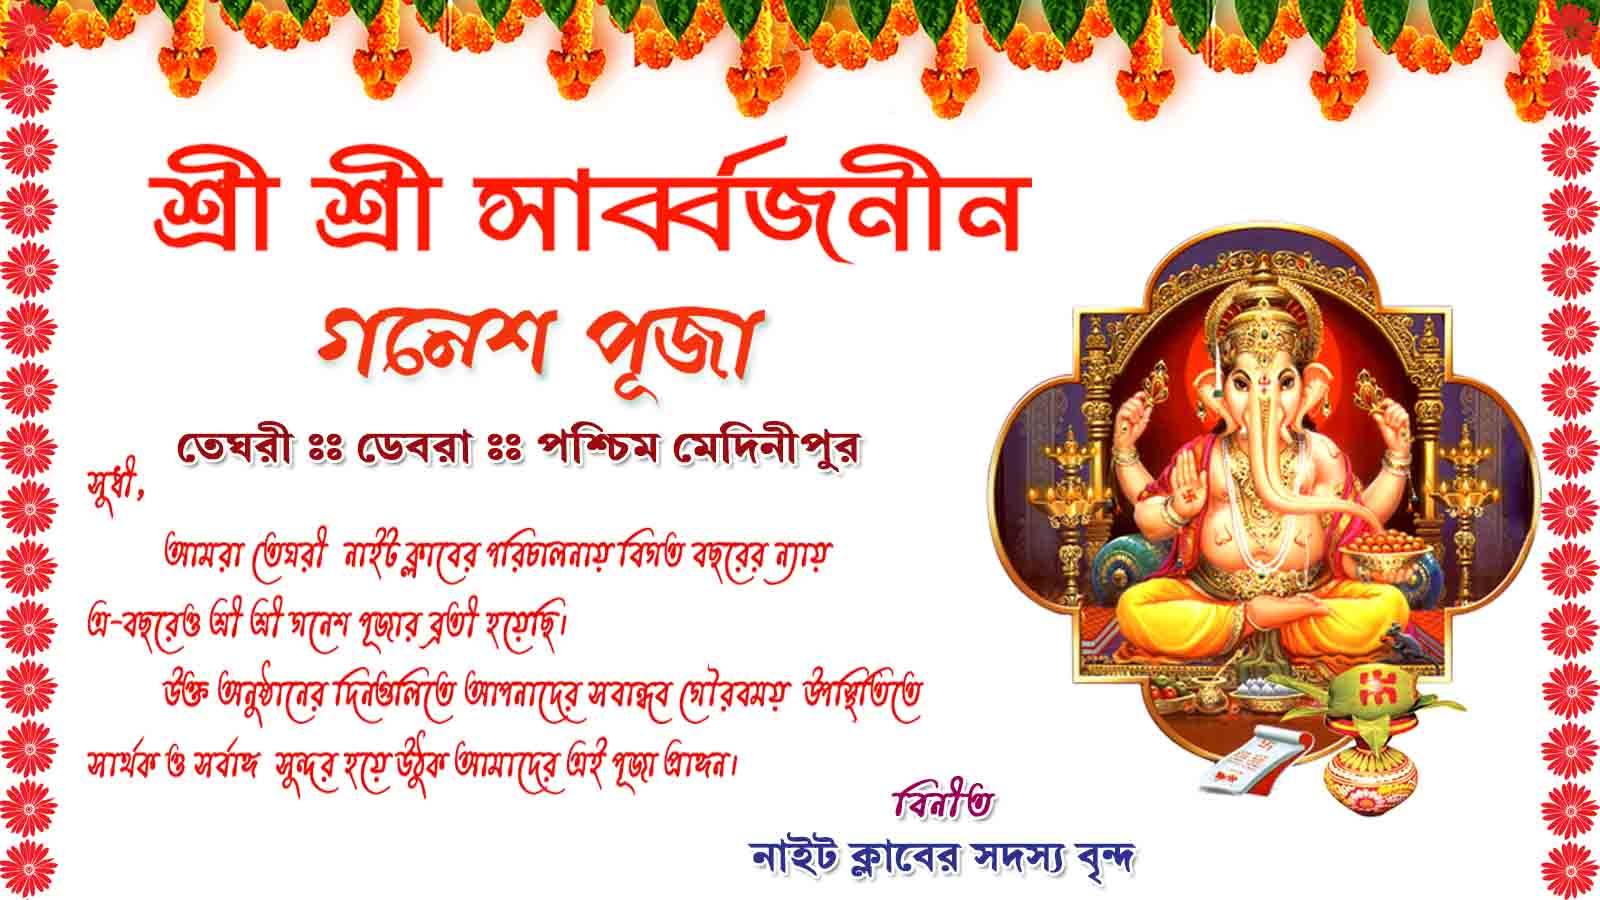 ganesh puja invitation card in bengali format  u00bb picture